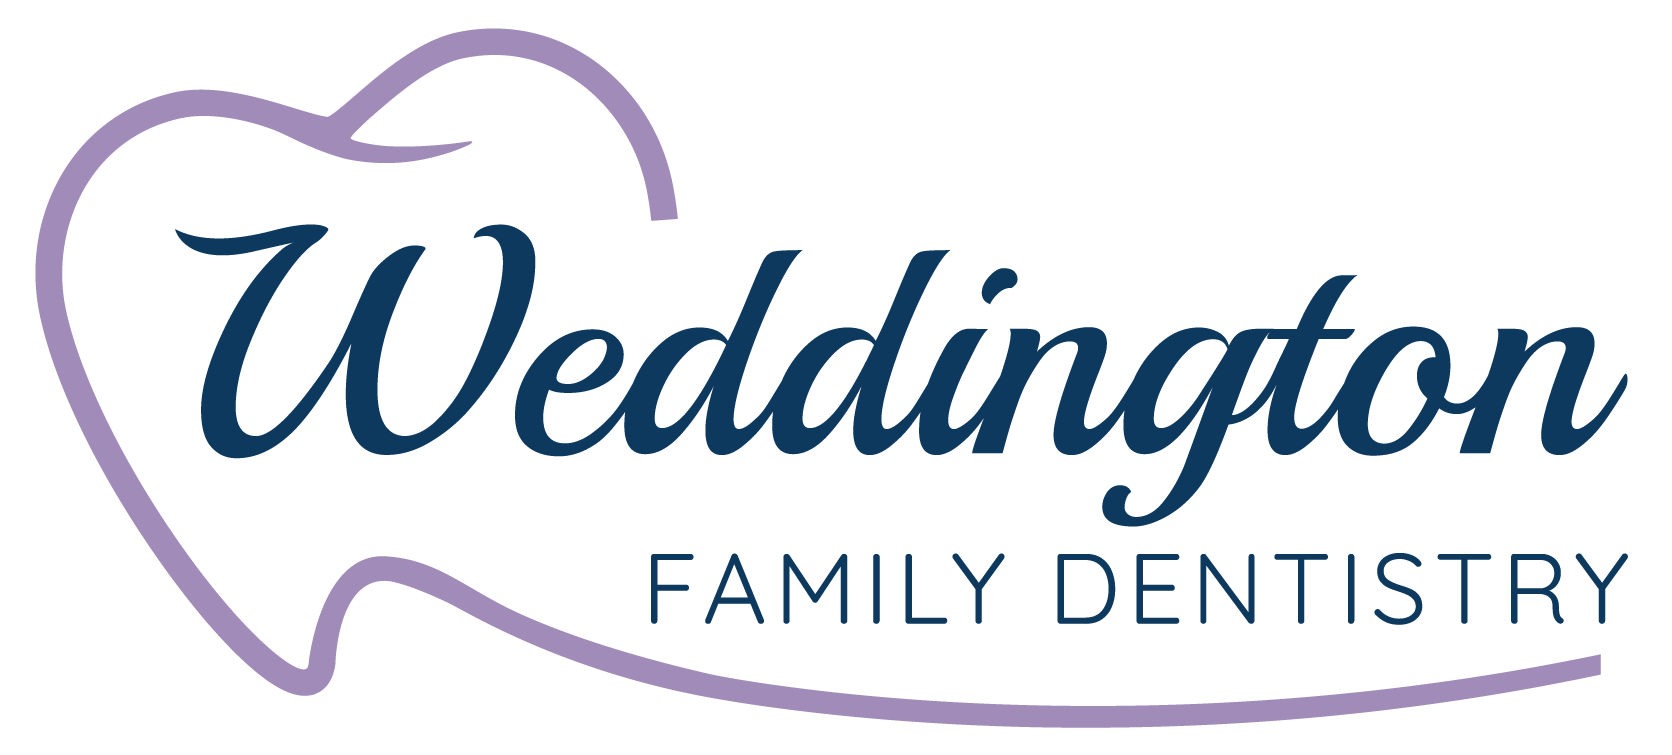 Weddington Family Dentistry